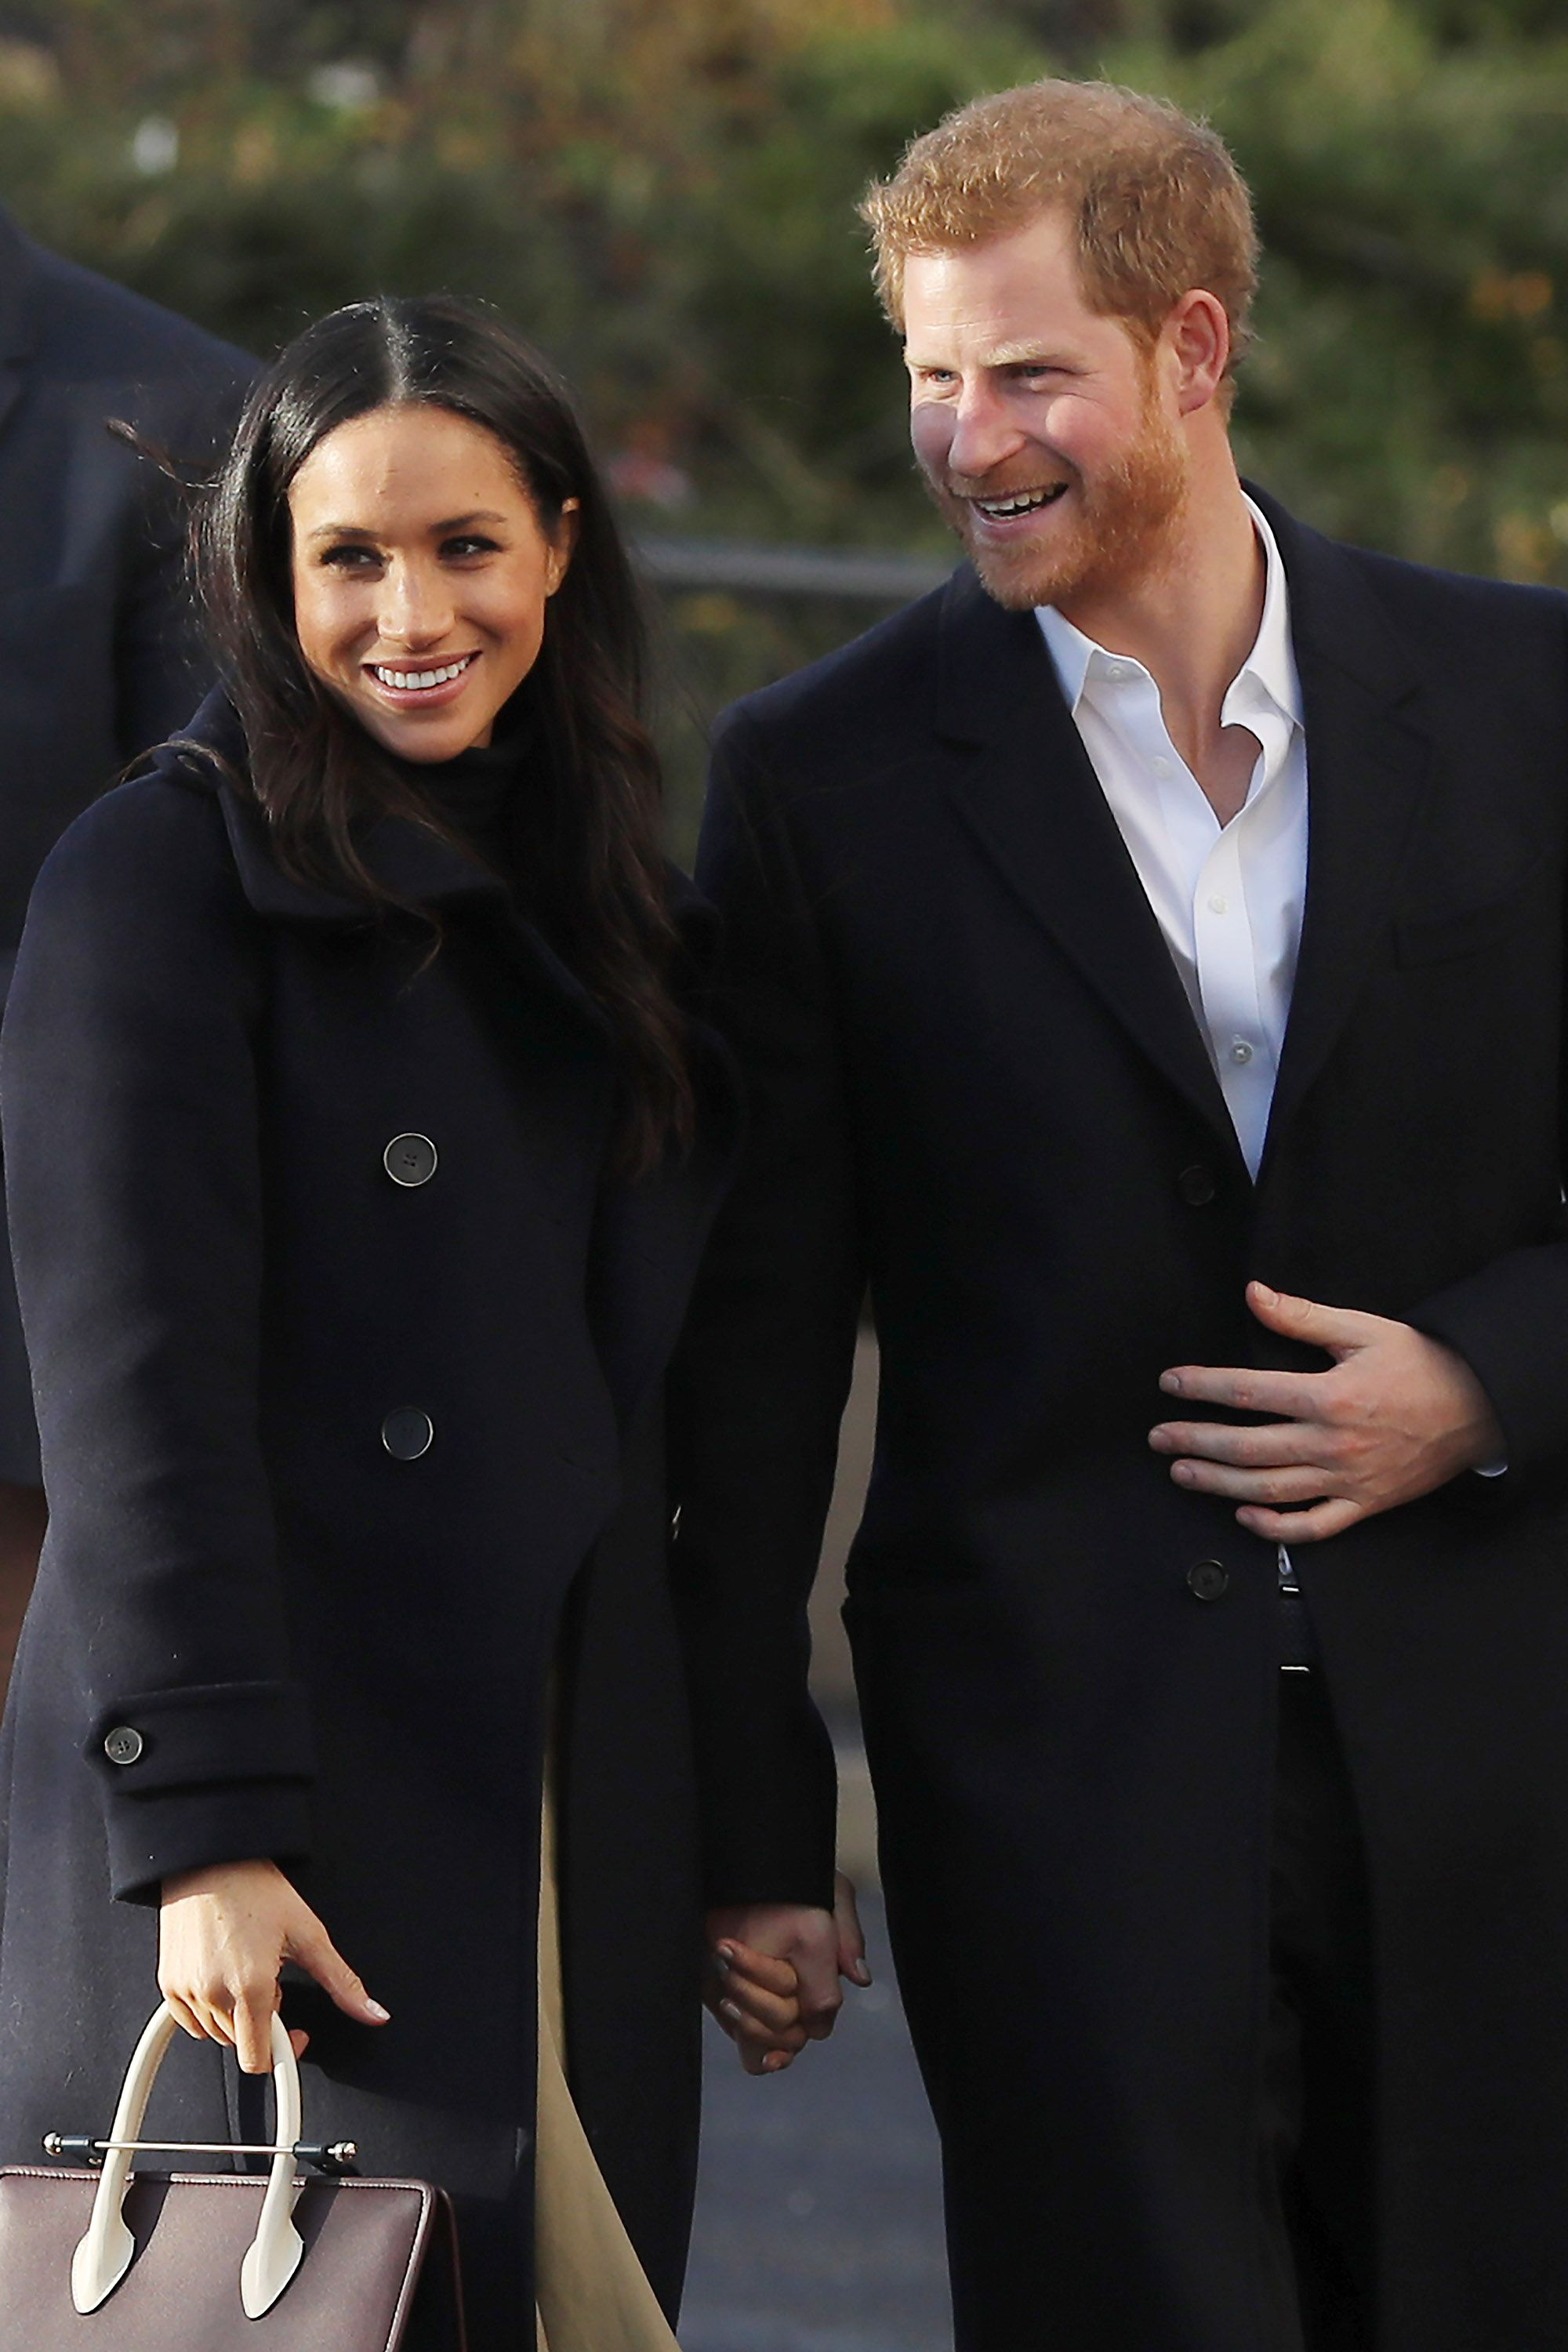 Prince Harry and Meghan Markle Make Their First Appearance After the Royal Wedding Prince Harry and Meghan Markle Make Their First Appearance After the Royal Wedding new foto